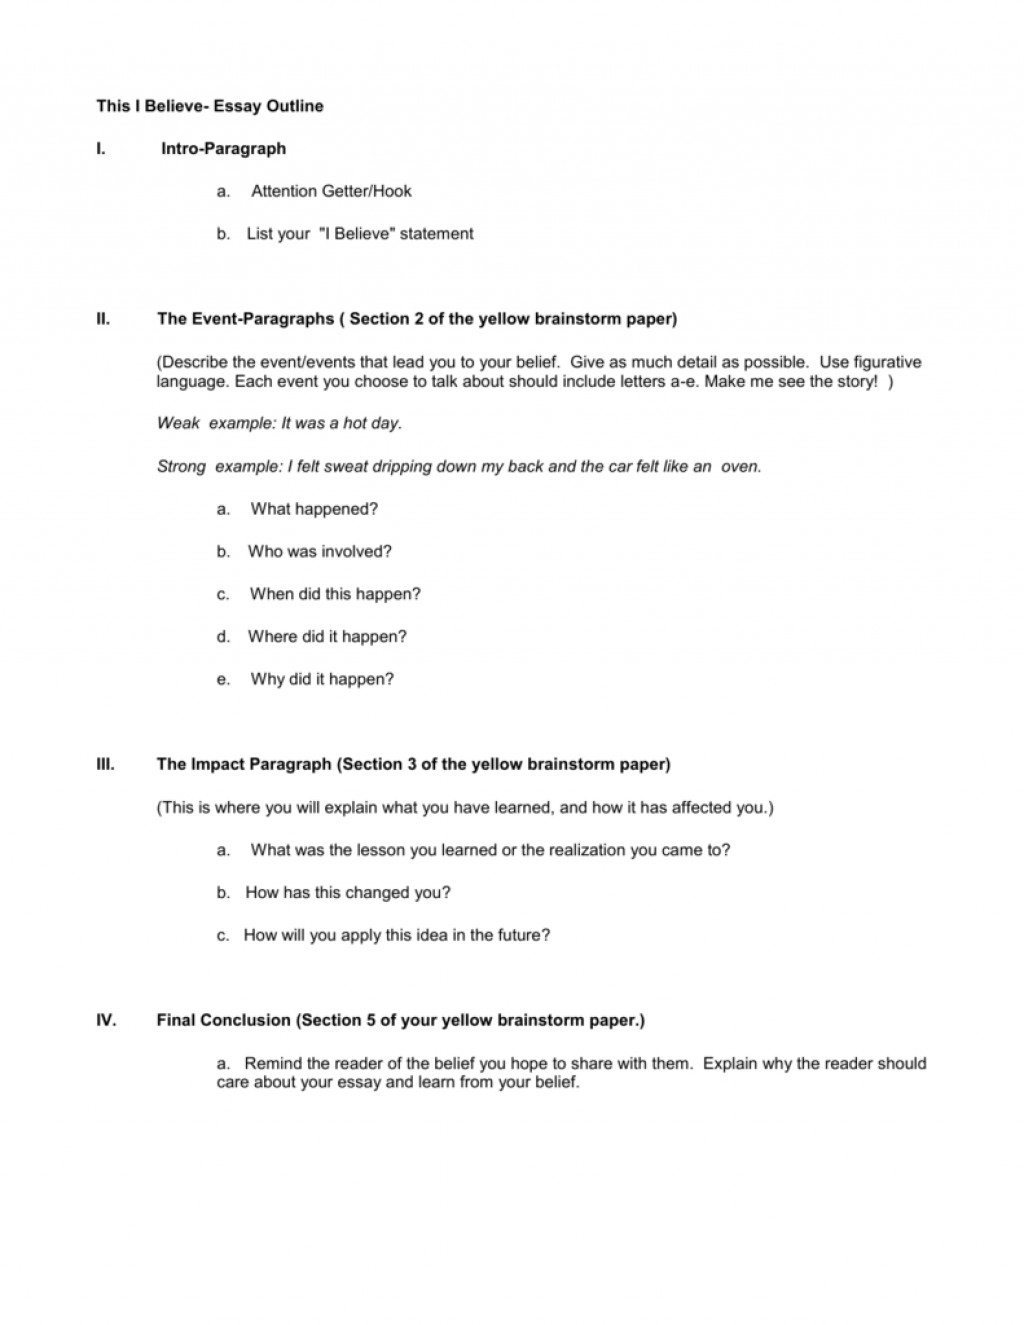 001 007820321 2 Essay Example This I Believe Impressive Outline Large